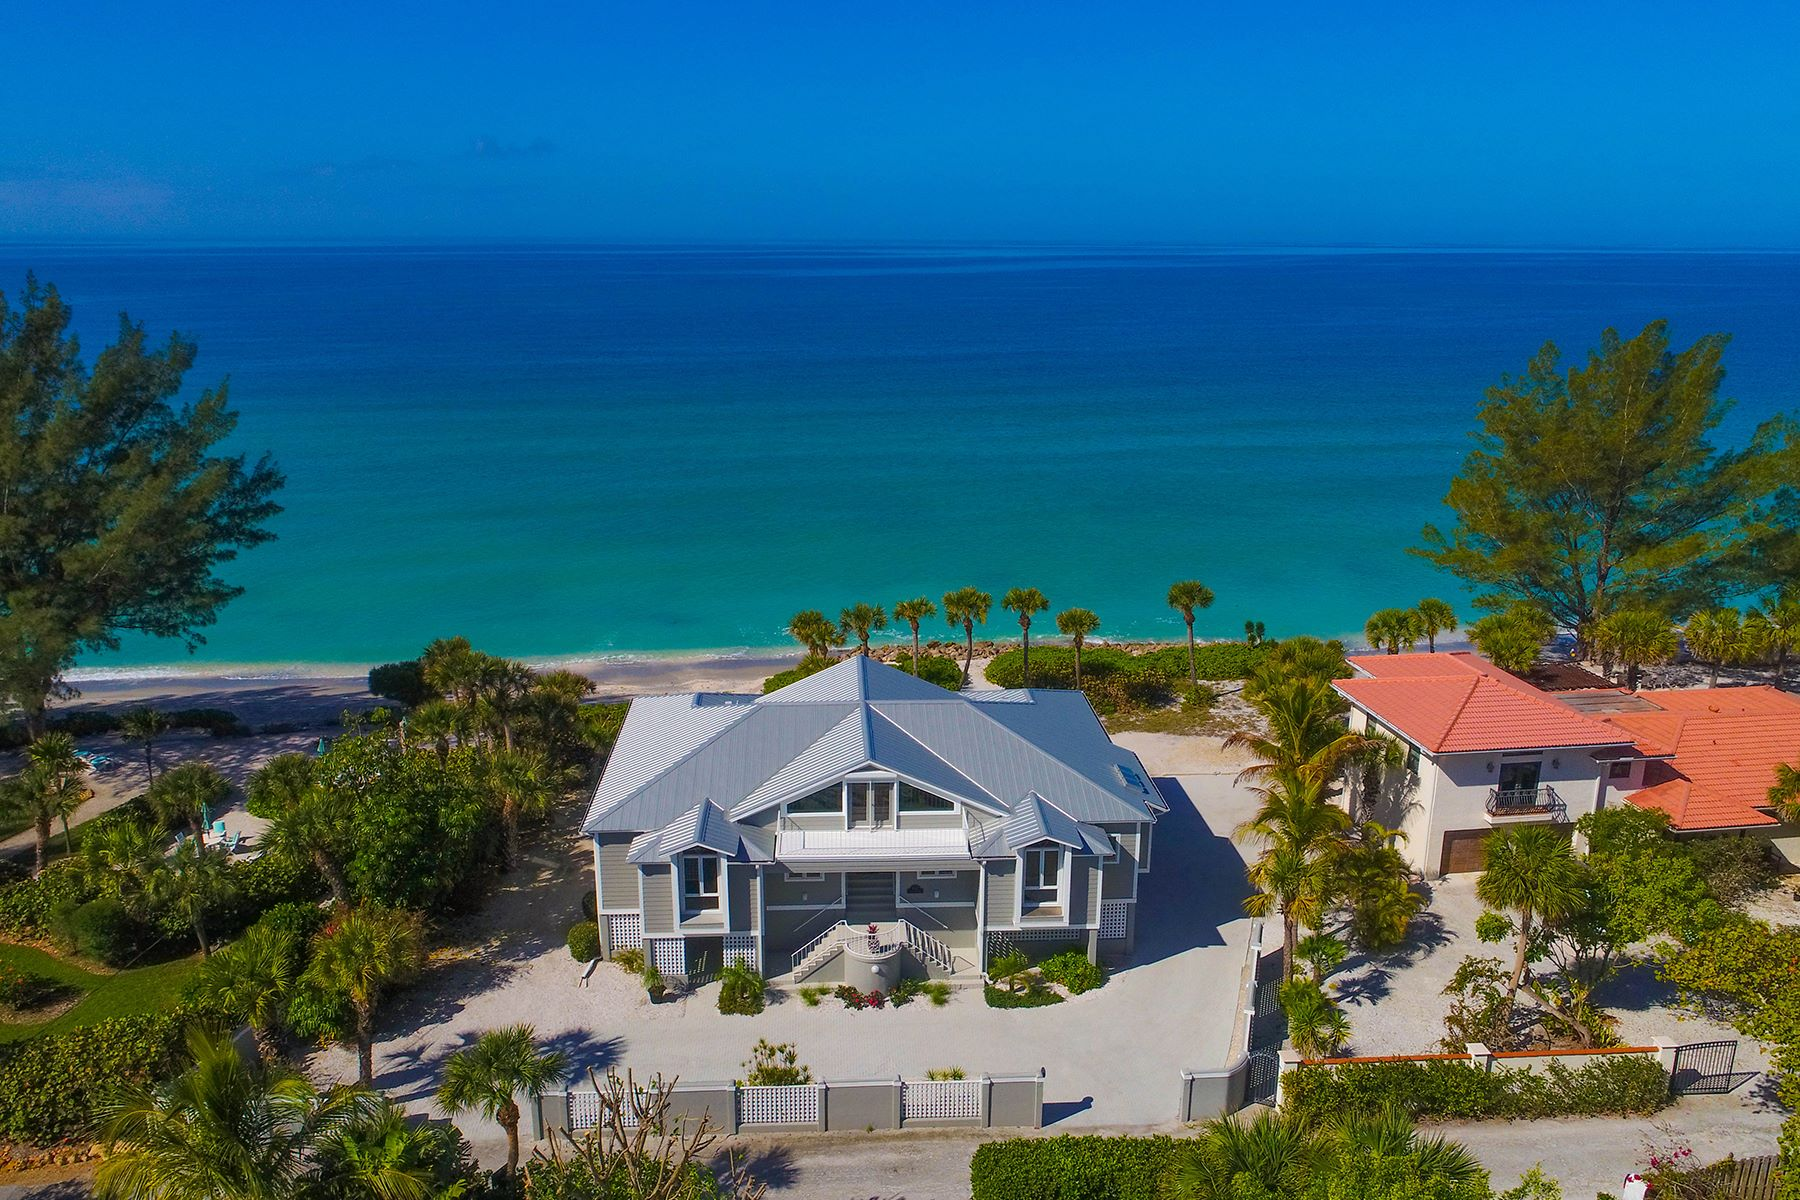 Single Family Home for Sale at CASEY KEY 1027 N Casey Key Rd Osprey, Florida, 34229 United States